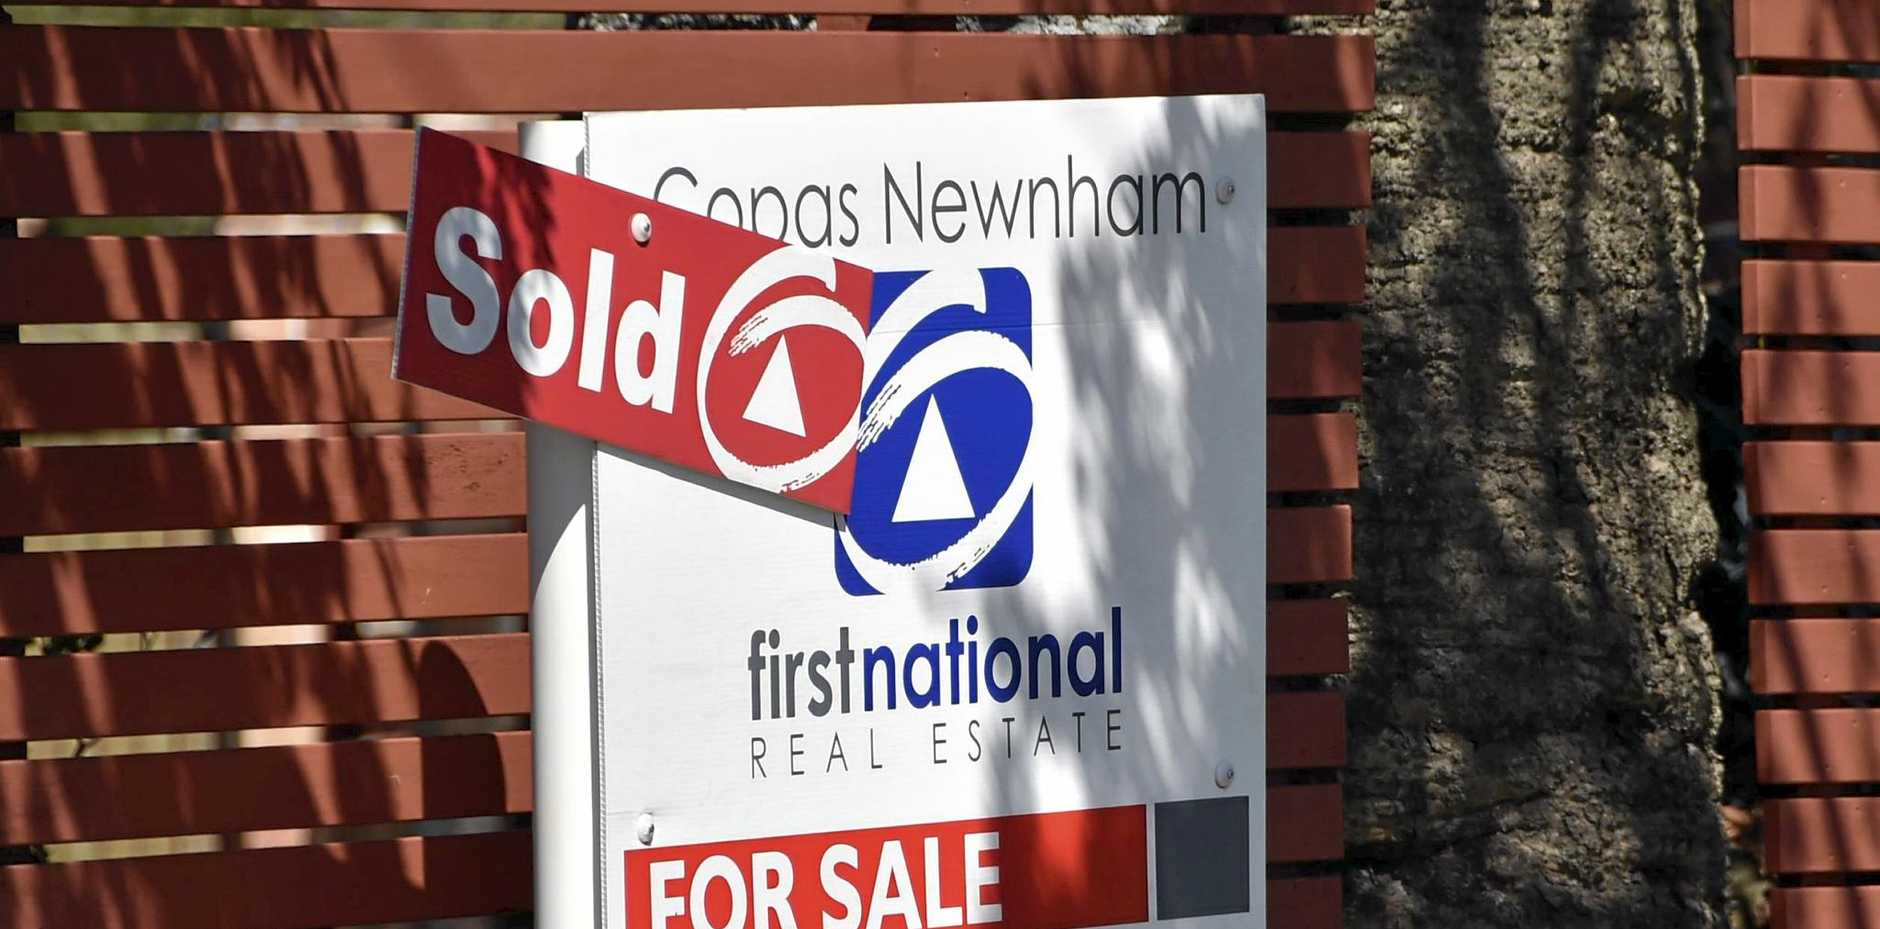 Rockhampton has recorded a double digit increase in median house prices over the last quarter.